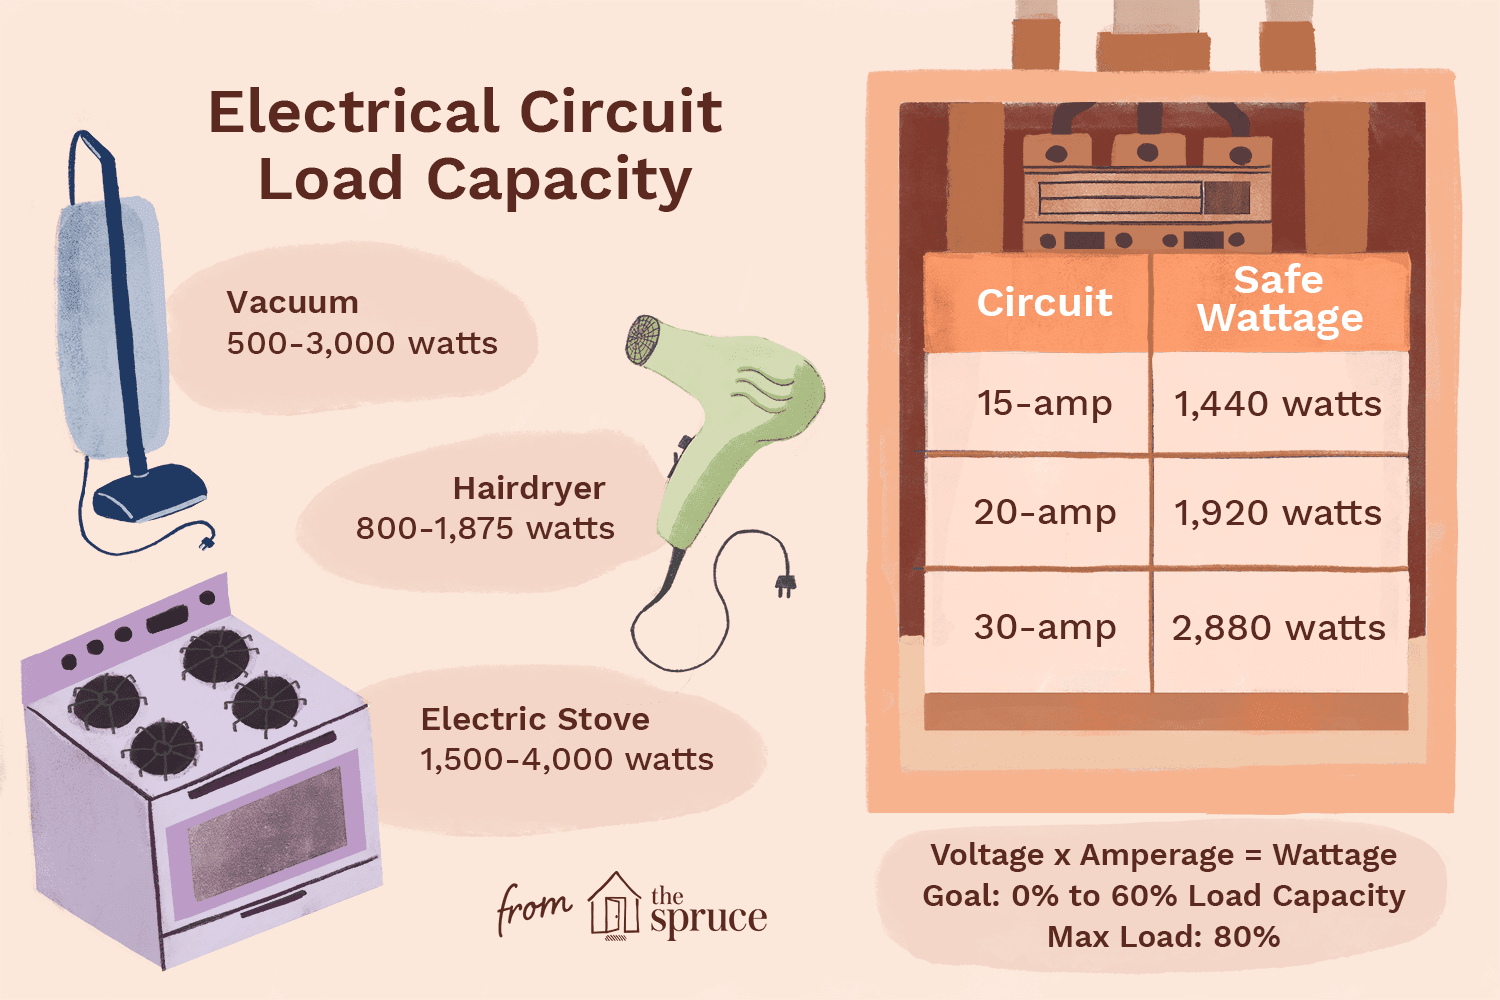 How To Calculate Electrical Circuit Load Capacity